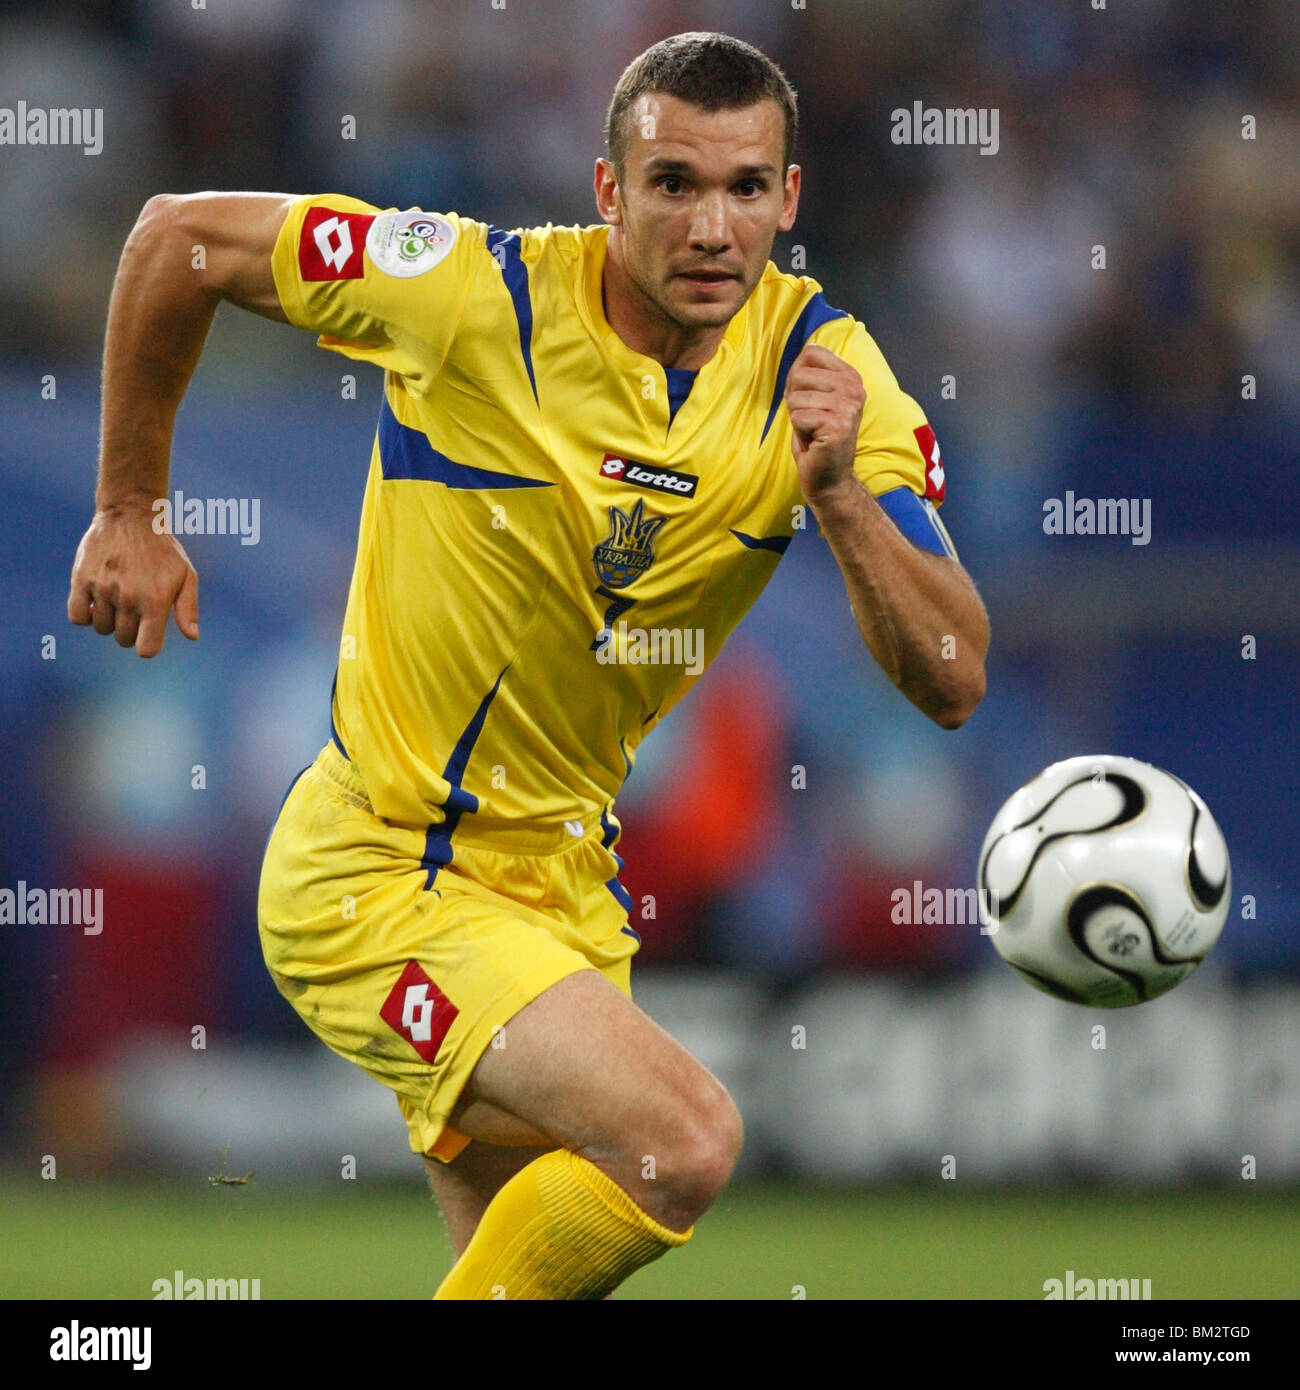 Andriy Shevchenko of Ukraine chases the ball during a FIFA World